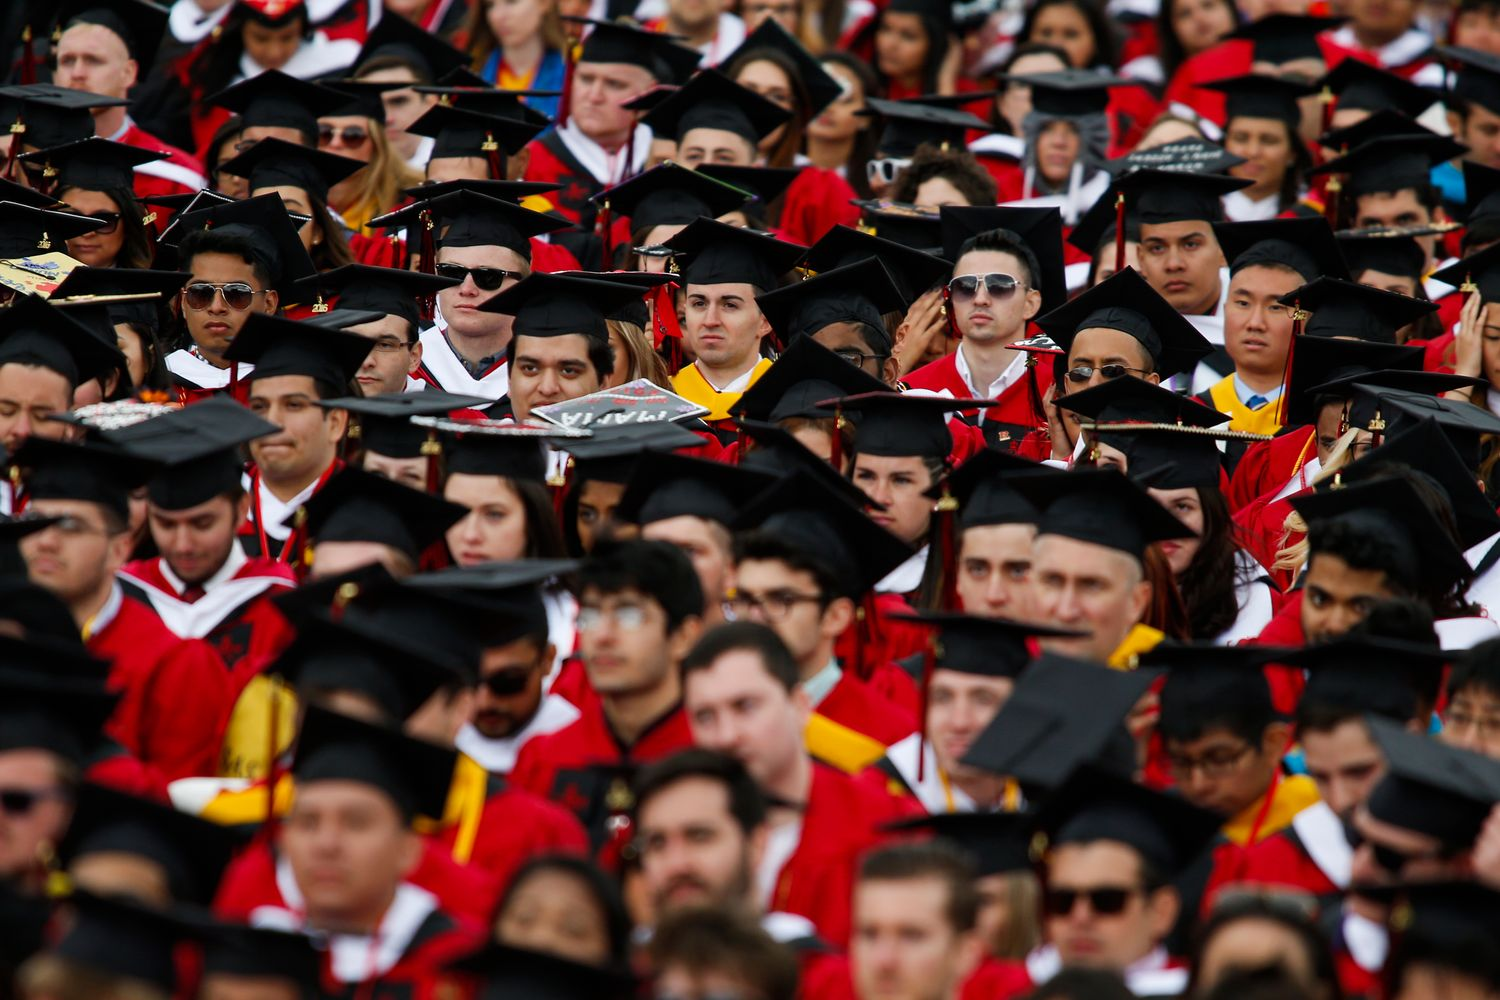 40 million Americans face student loan cliff